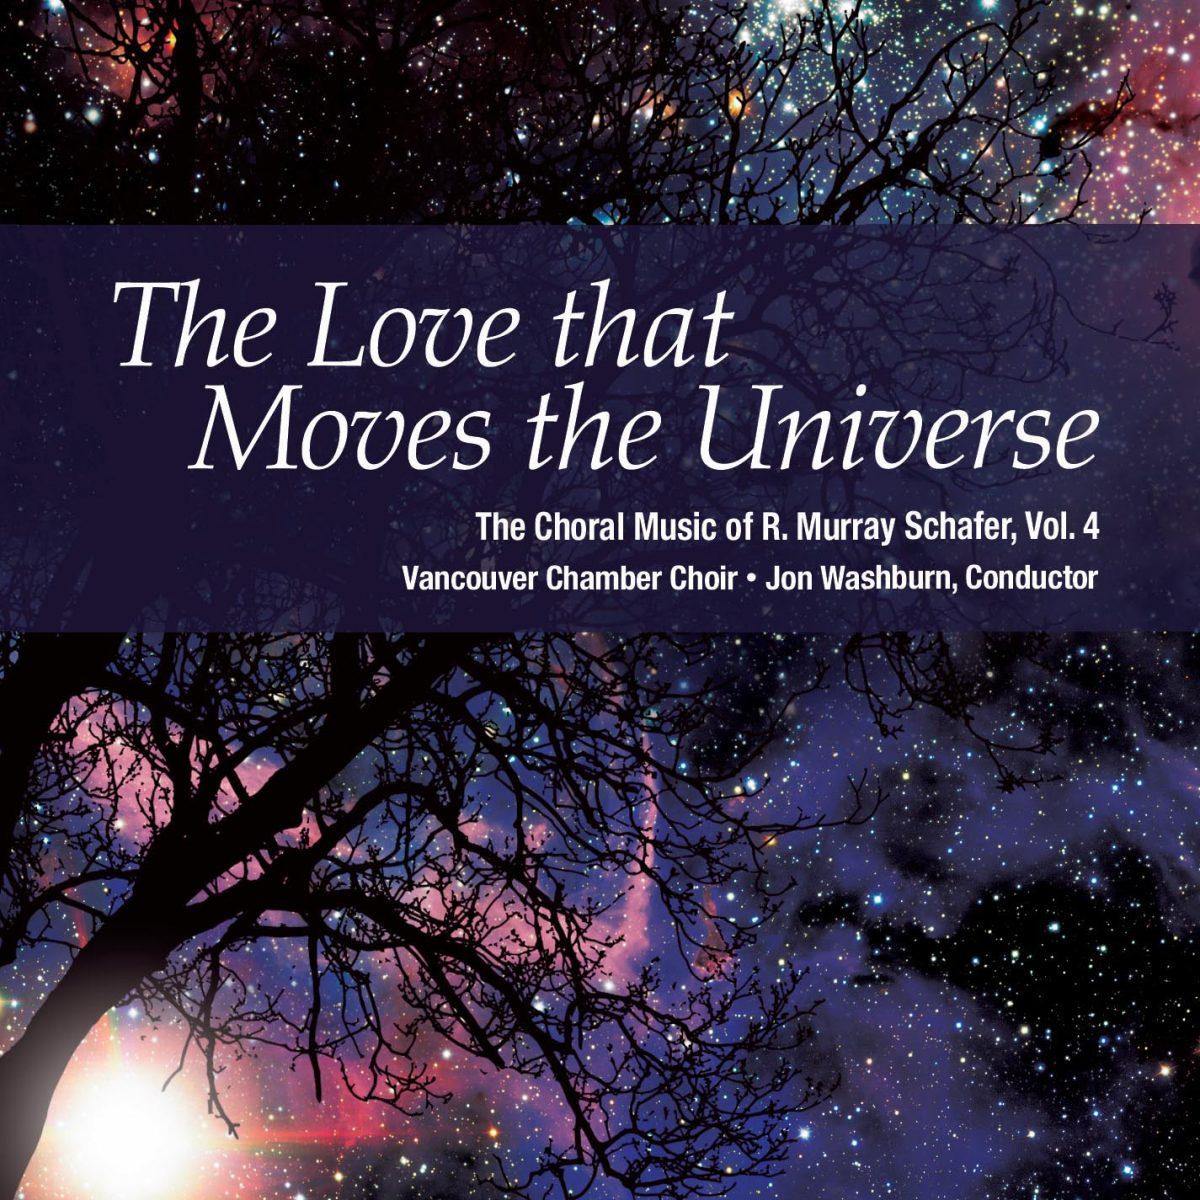 The Love that Moves the Universe